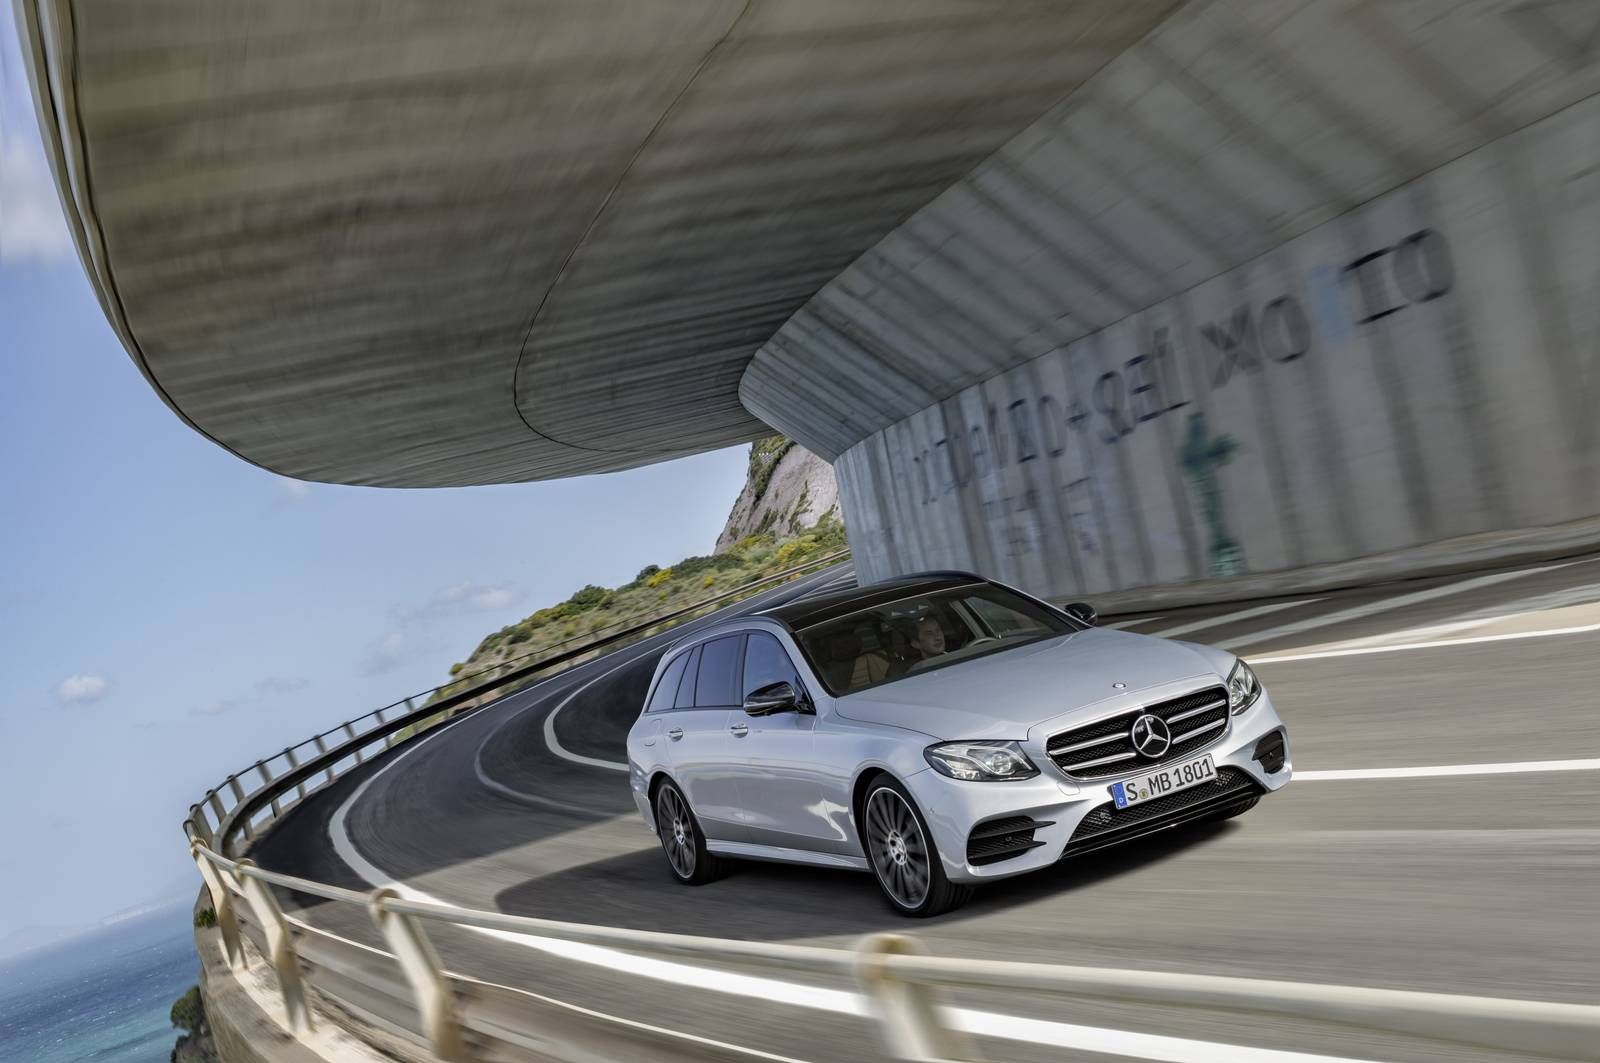 2018 Mercedes Benz E Class Estate UK Version photo - 2